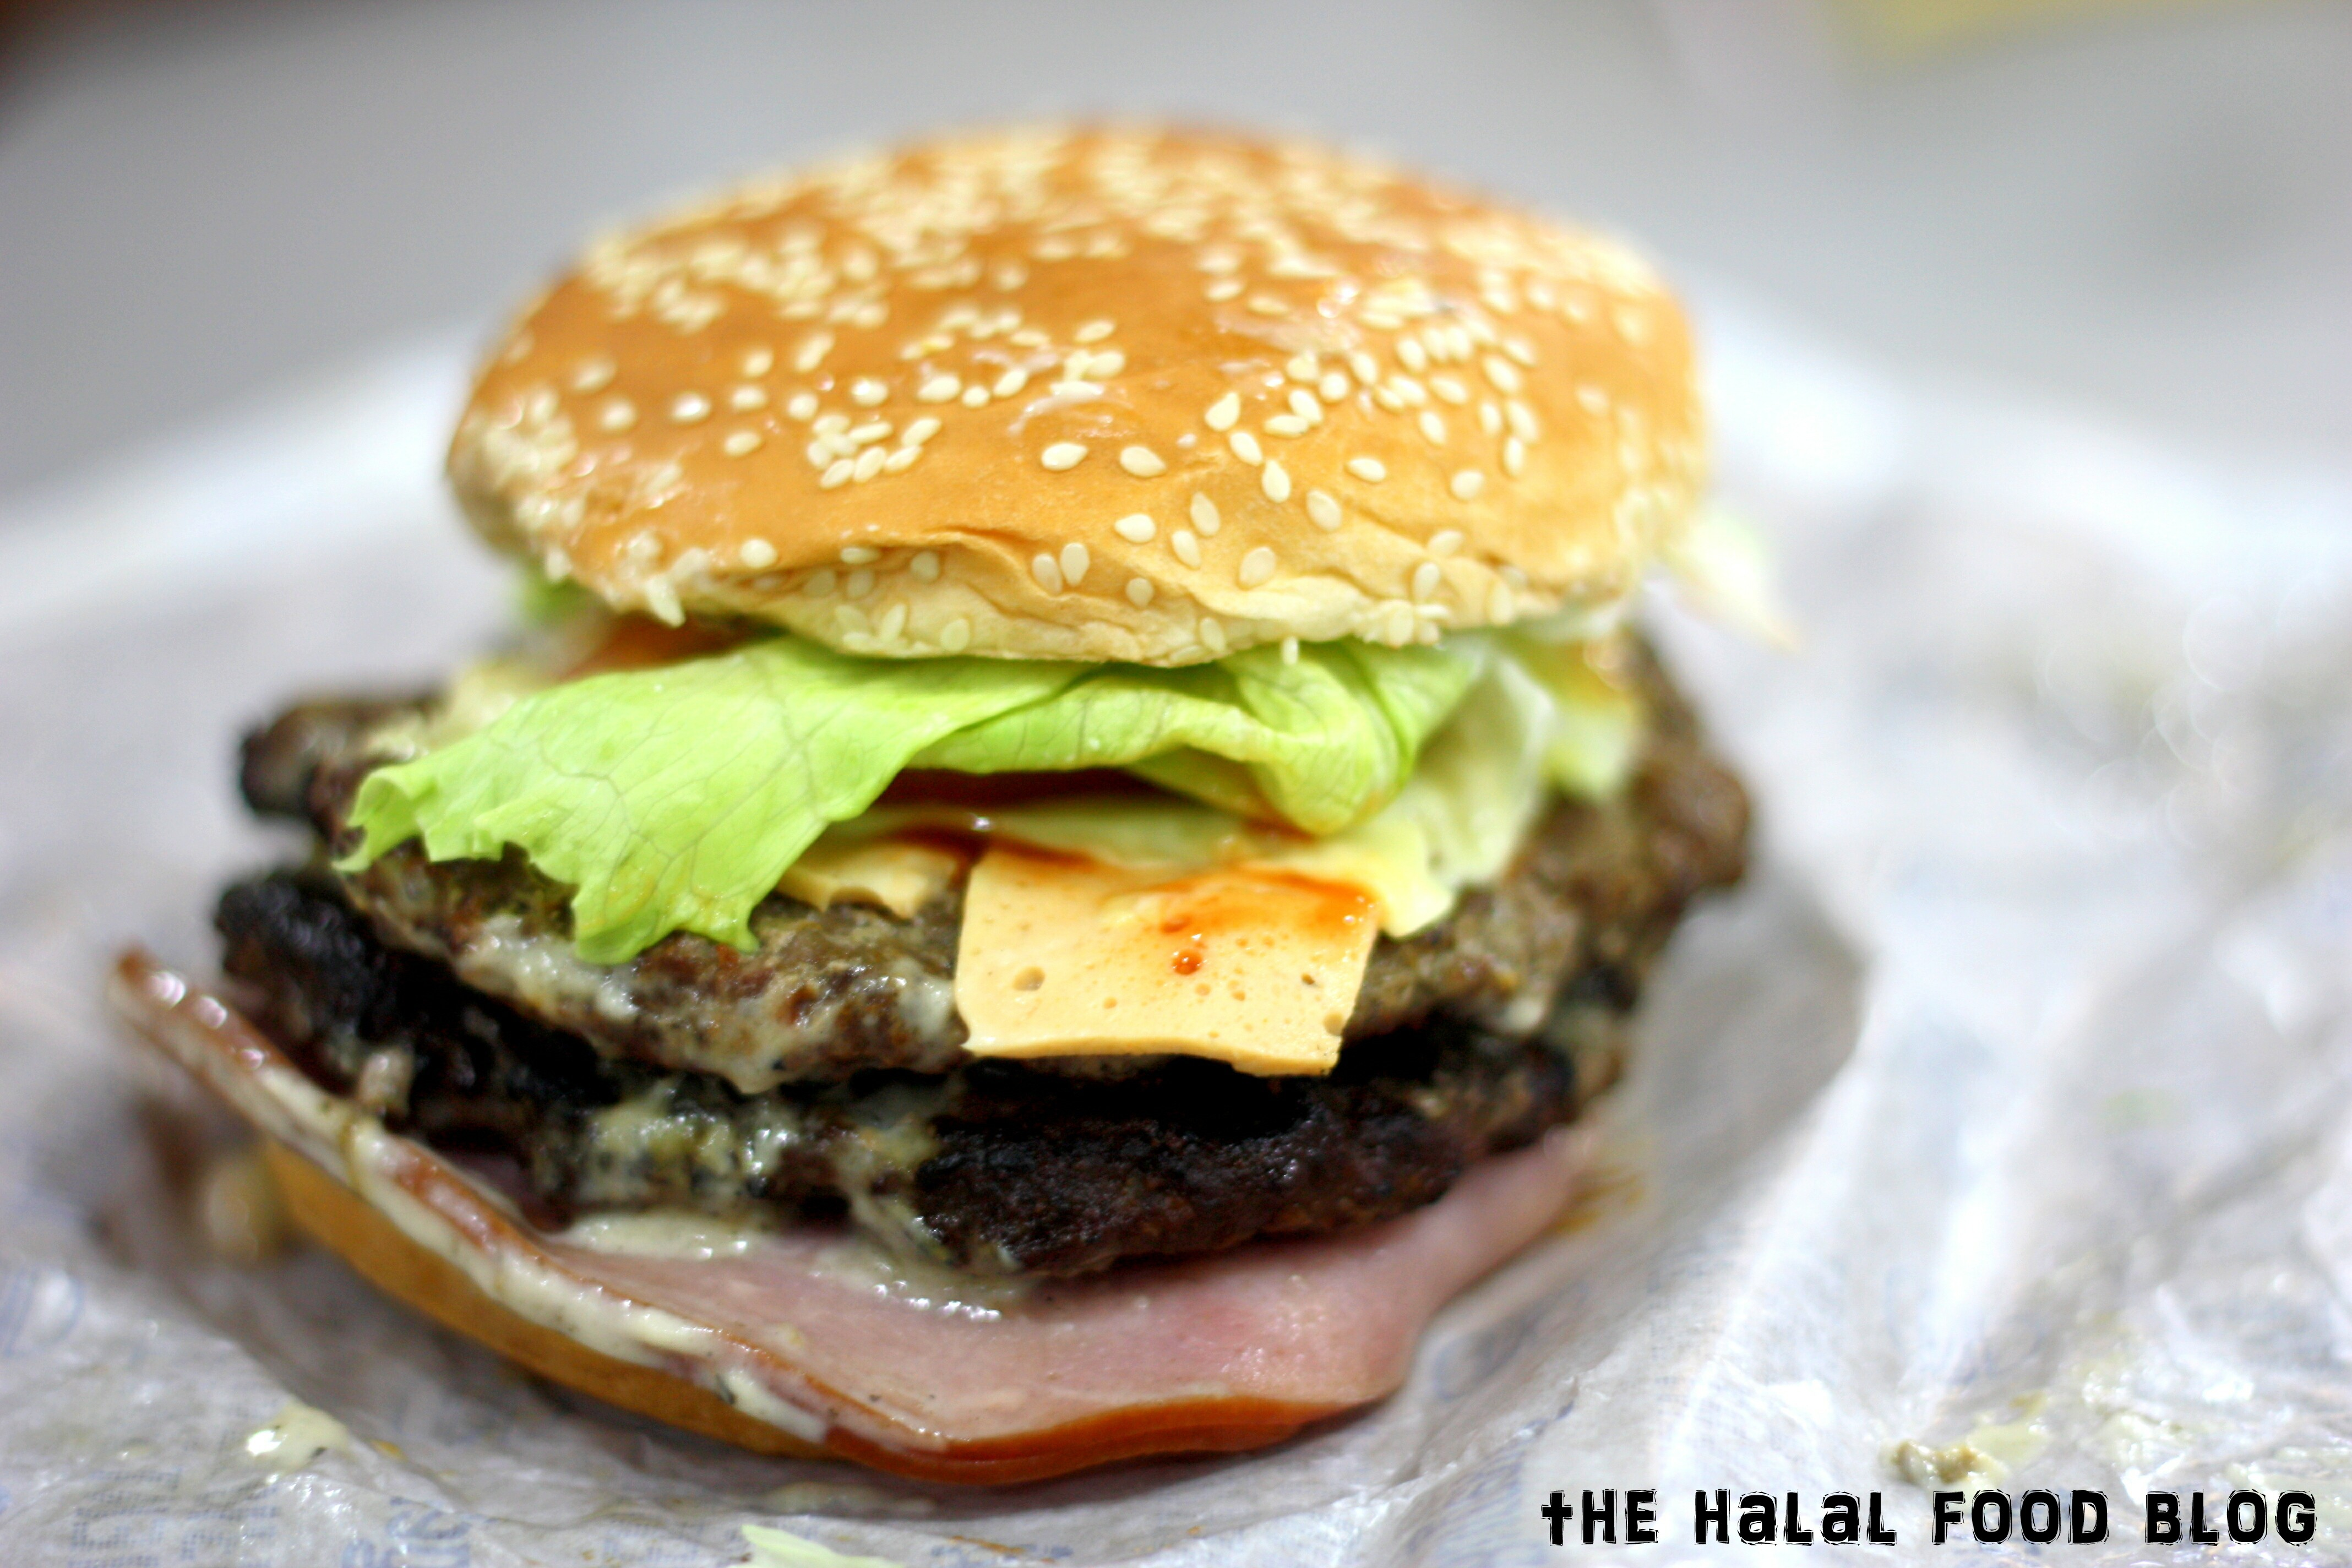 Fast Food Advantages And Disadvantages Wikipedia